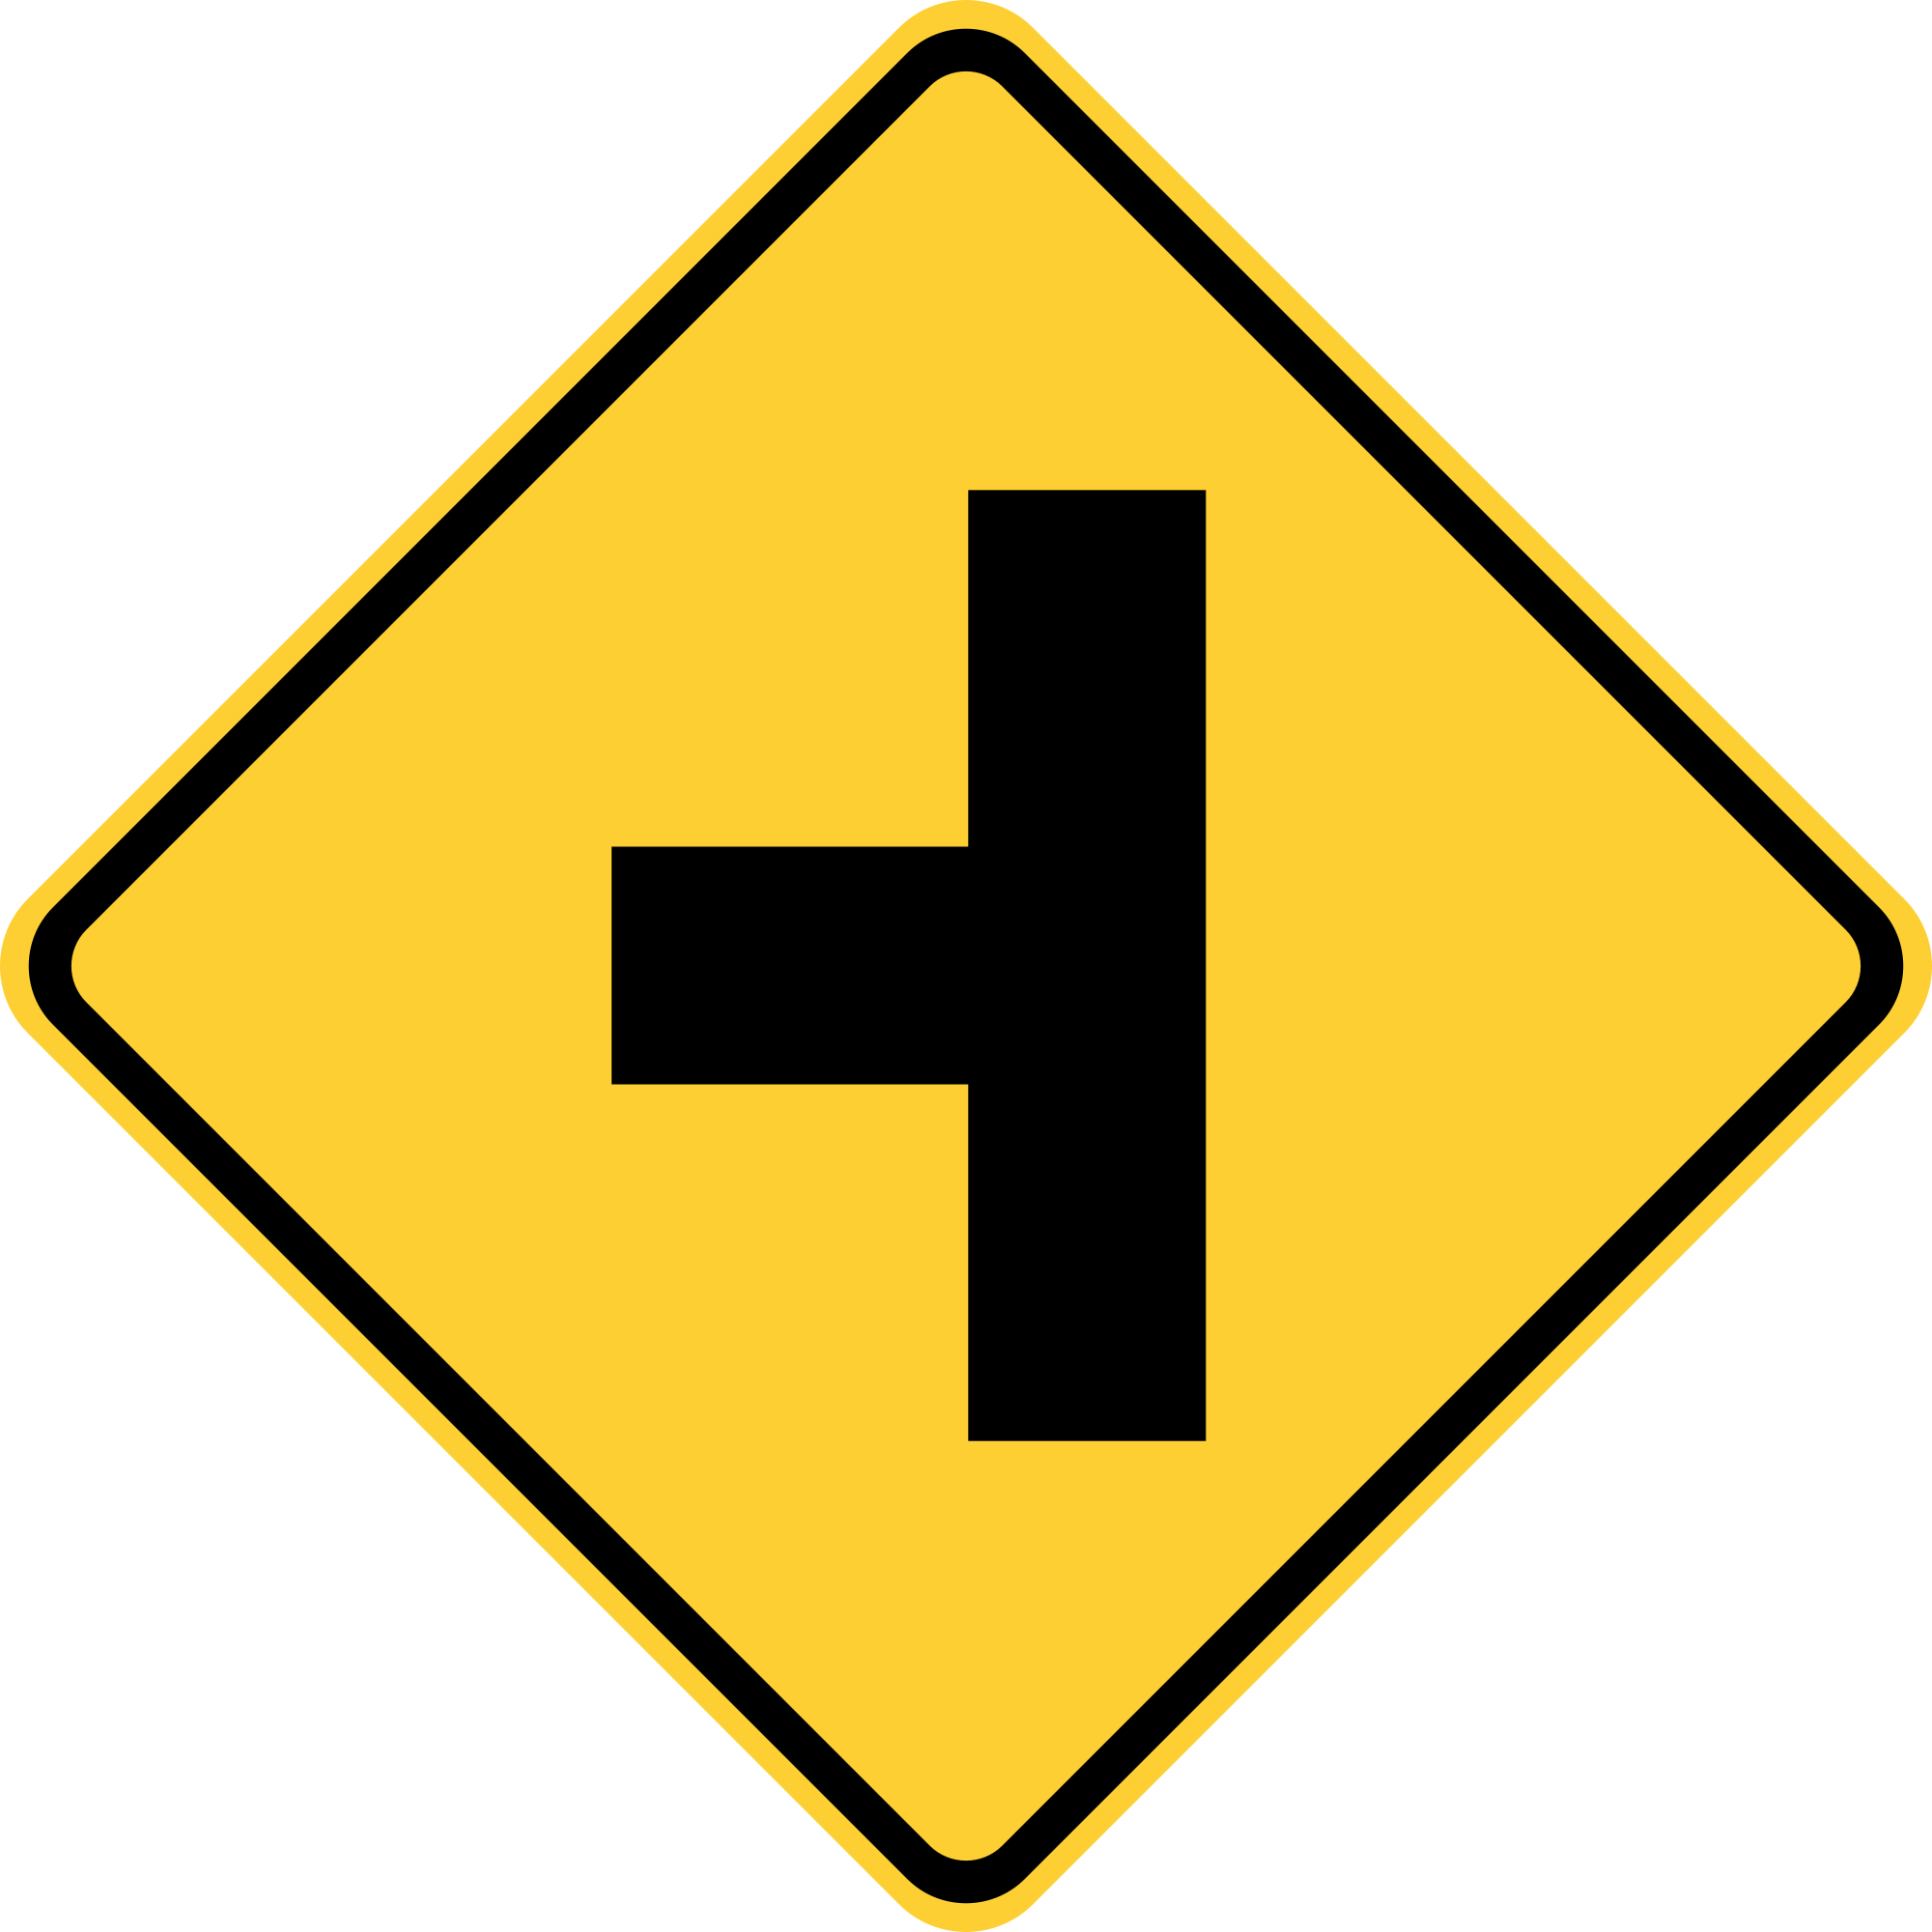 W2-2L Warning Sign